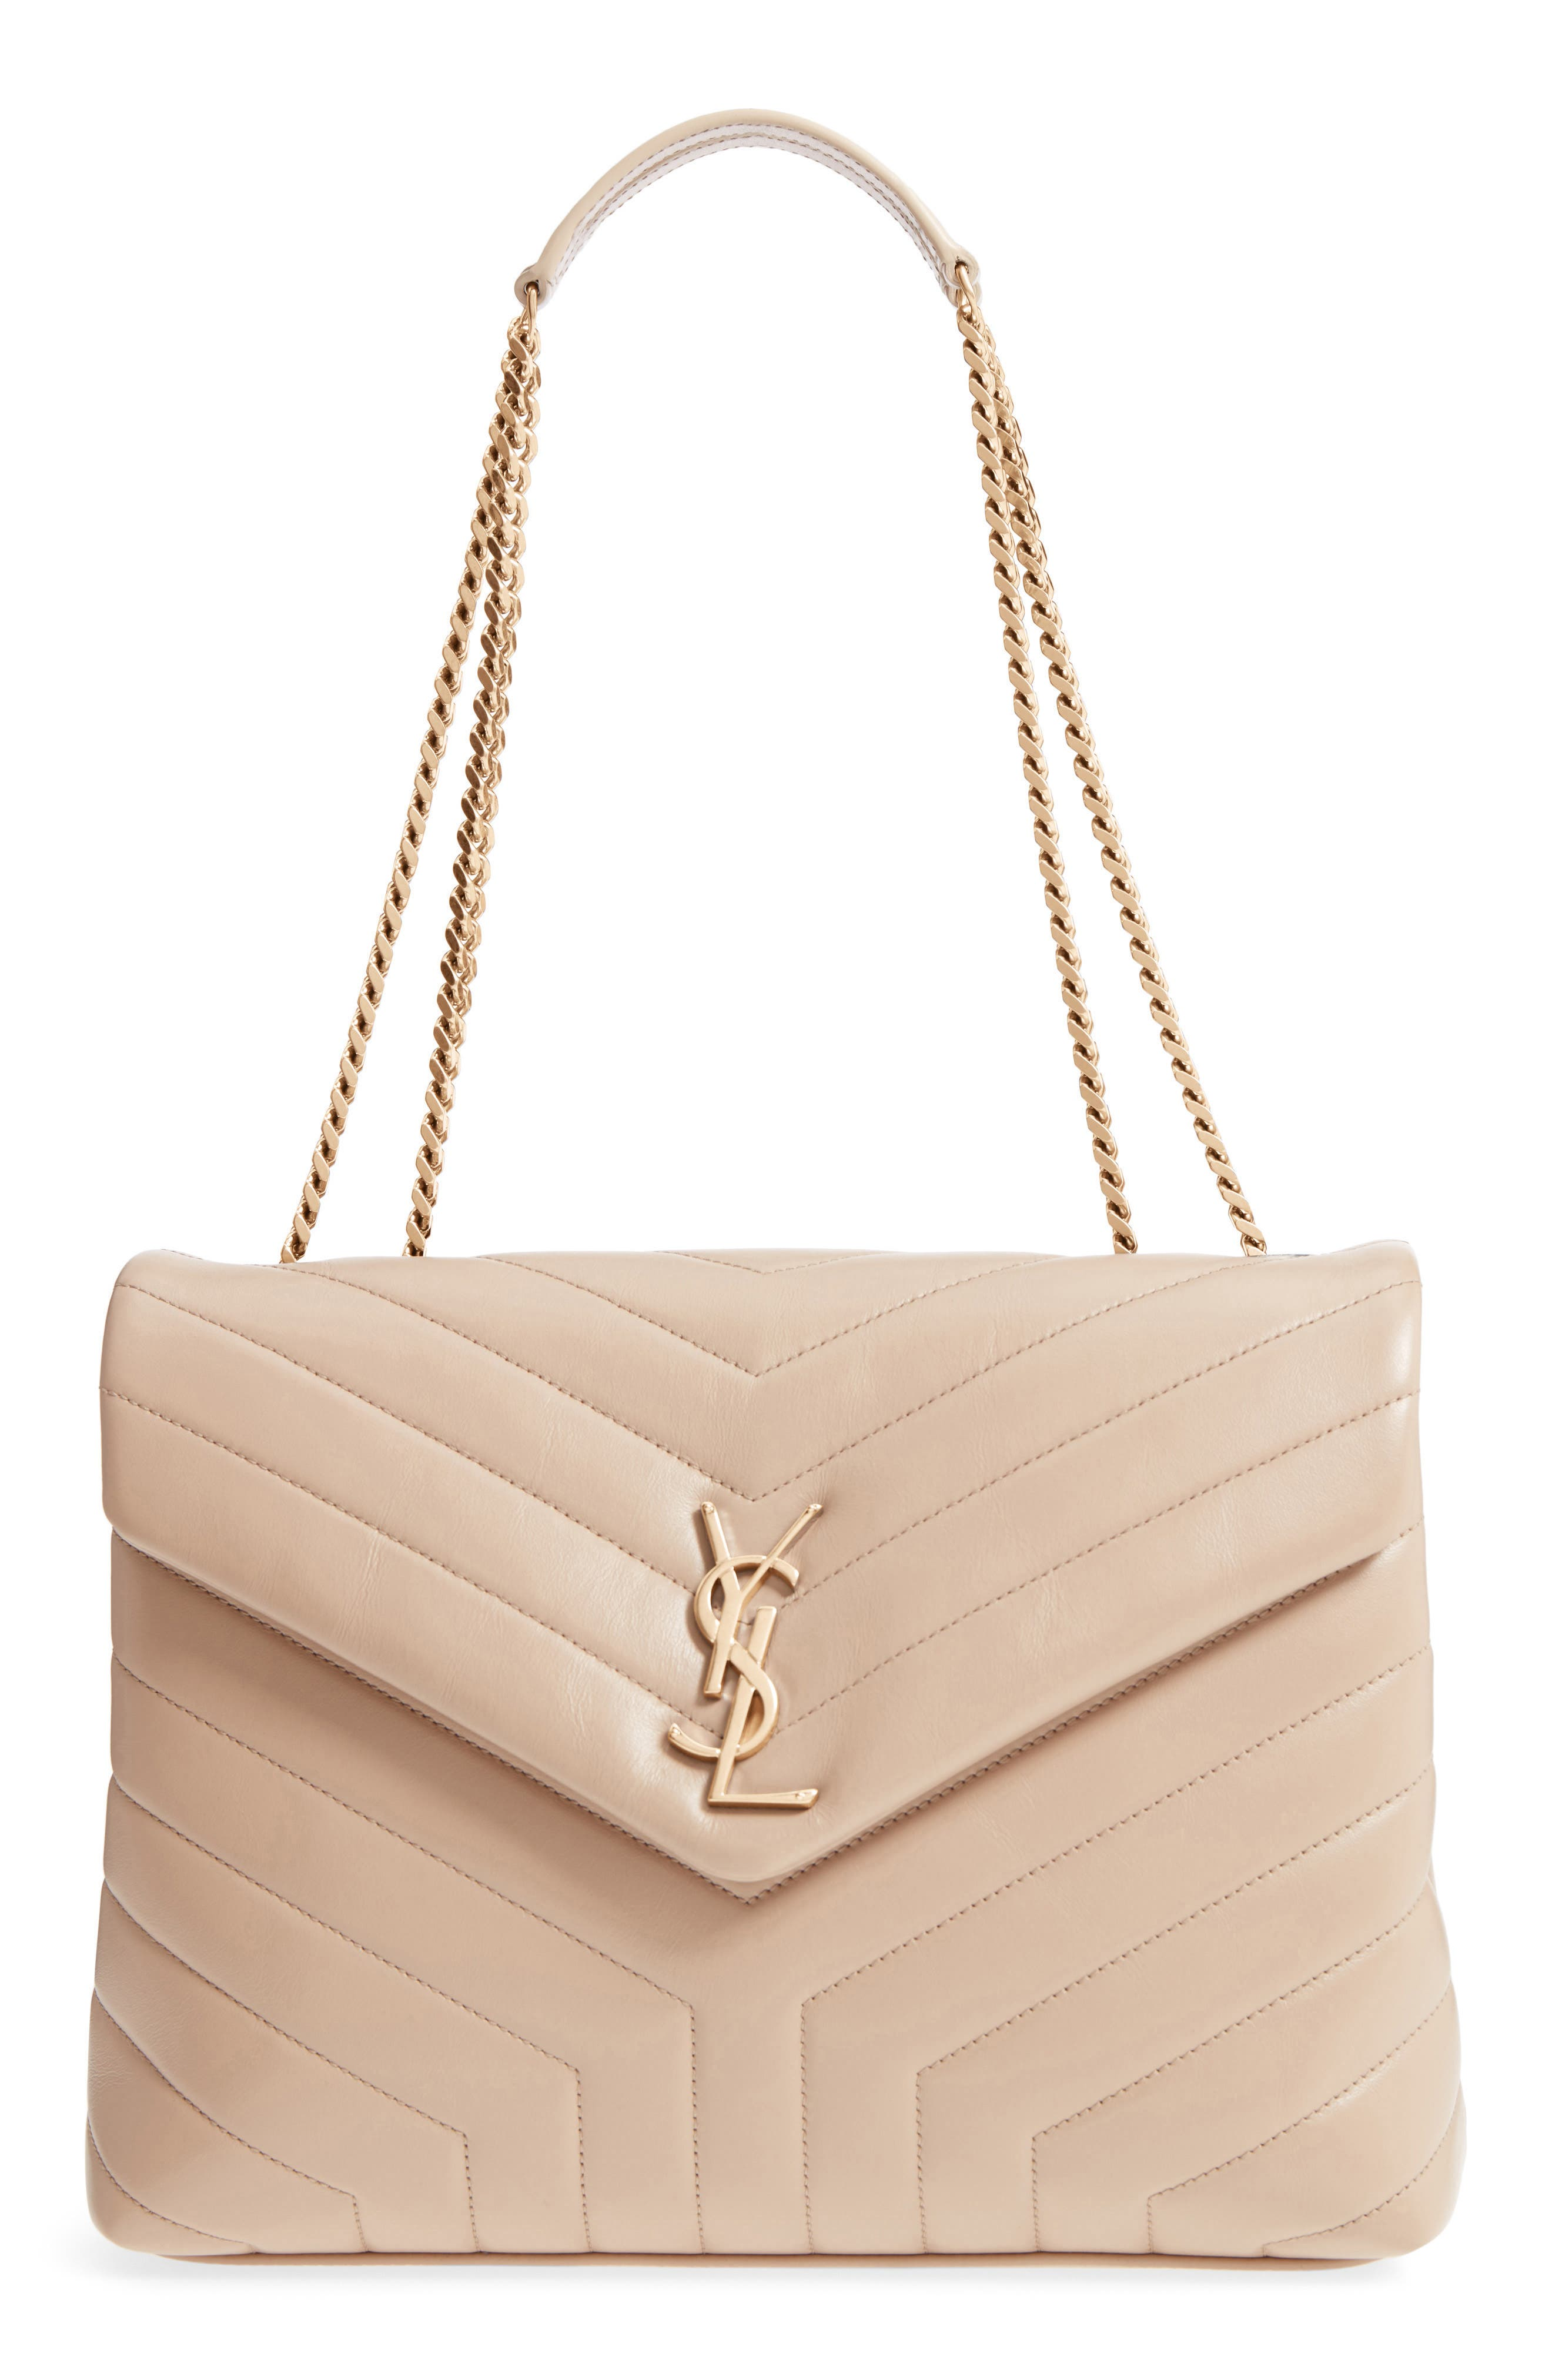 SAINT LAURENT Medium Loulou Matelassé Calfskin Leather Shoulder Bag, Main, color, LIGHT NATURAL